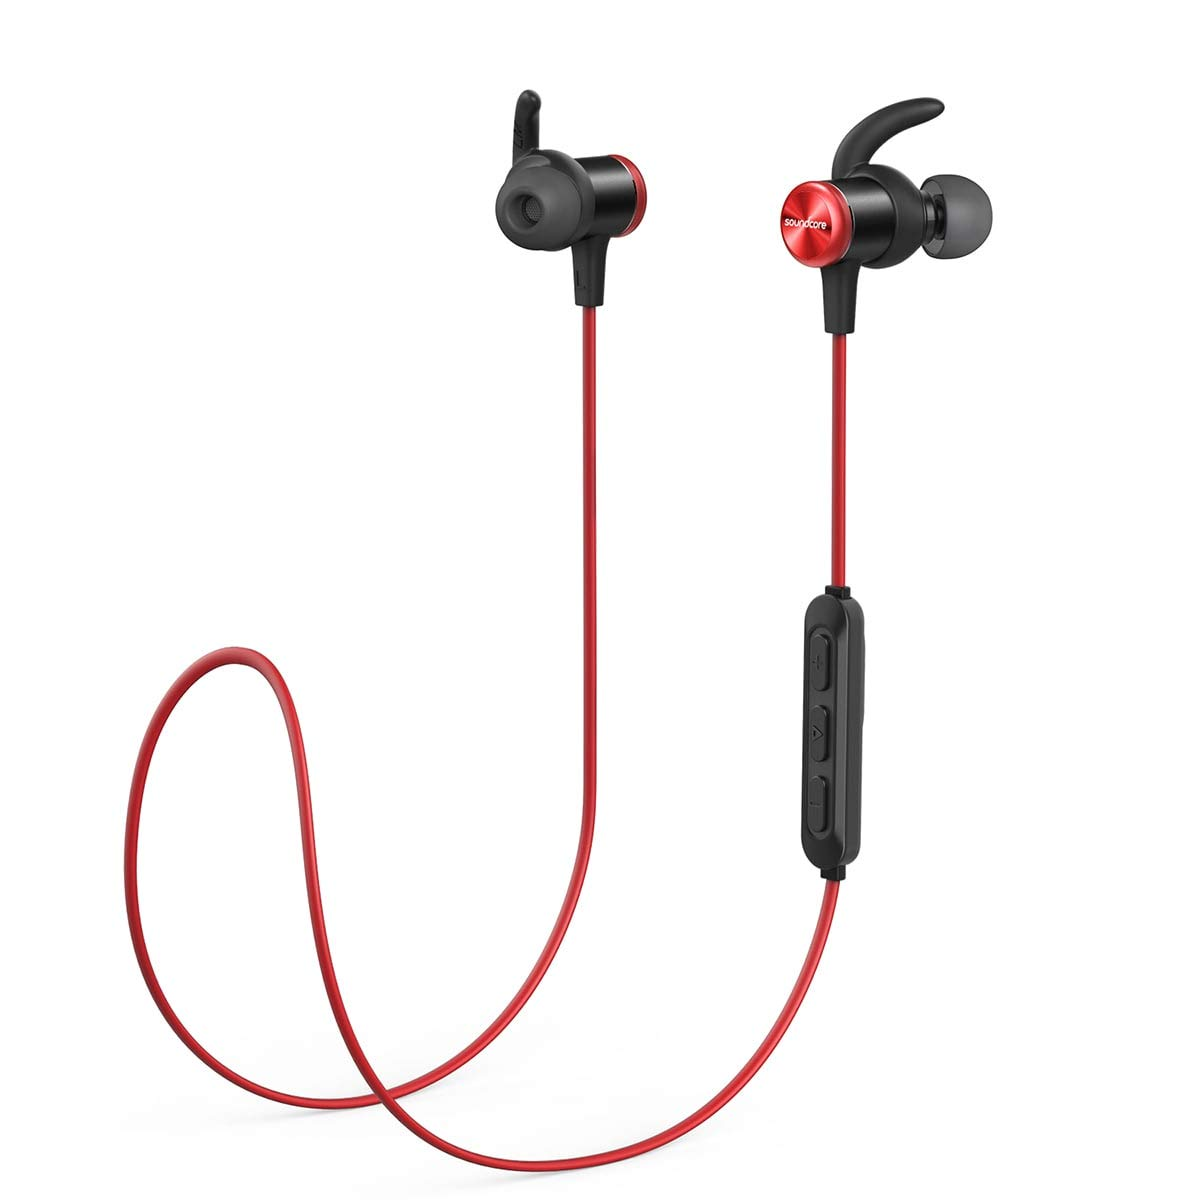 Bluetooth Headphones, Soundcore Spirit Sports Earbuds by Anker, Bluetooth 5.0, 8H Battery, IPX7 Waterproof, SweatGuard, Comfortable Wireless Headphones, Secure Fit for Running, Gym, Workout (RED)